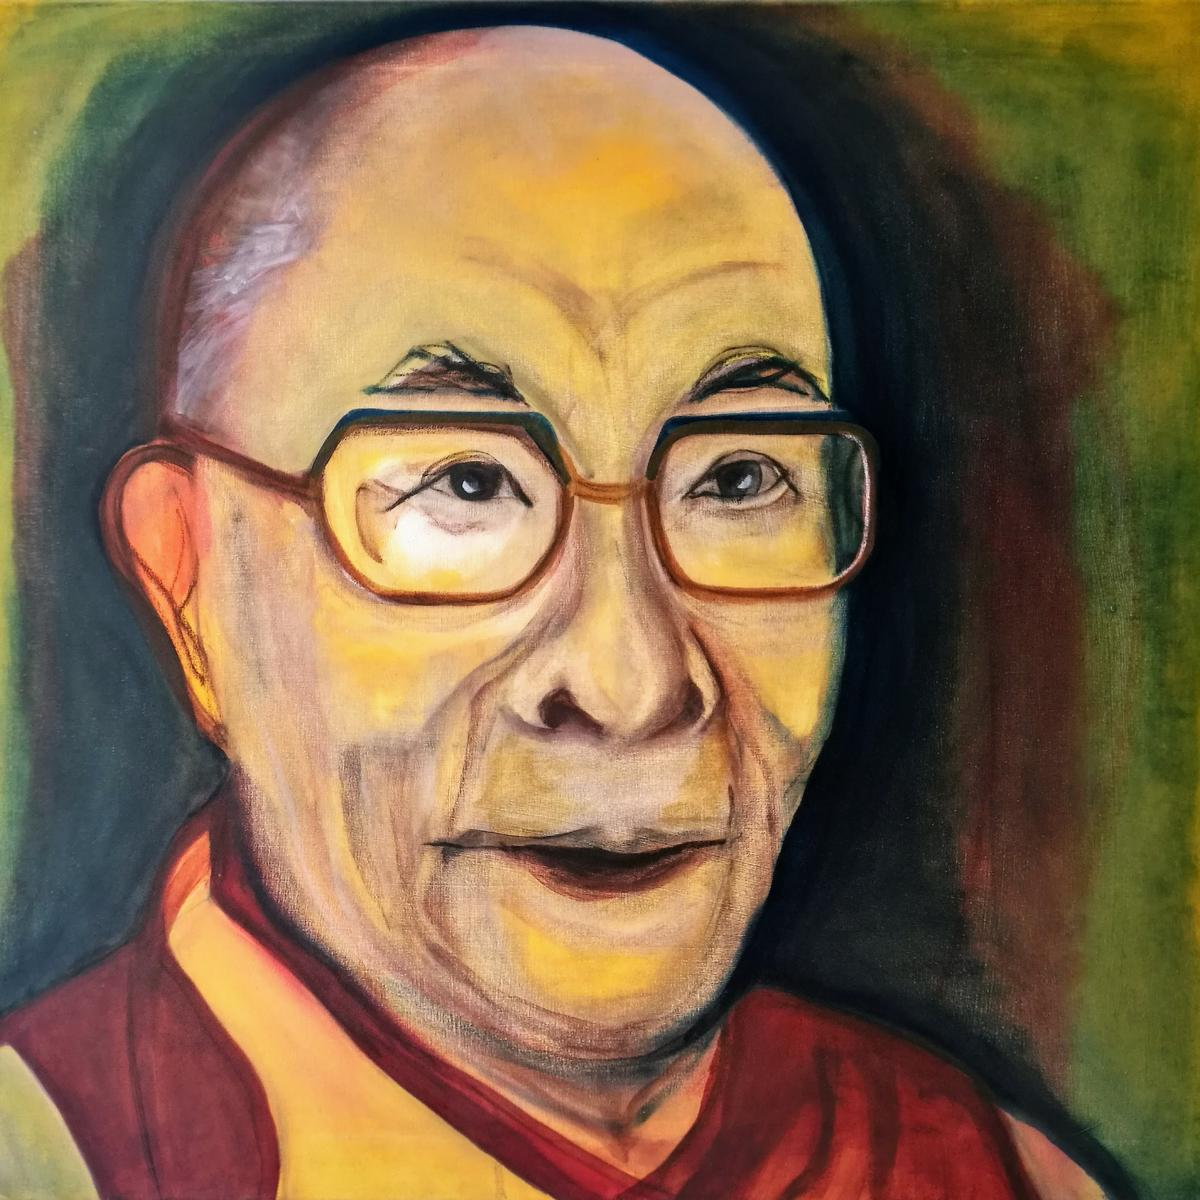 Dalai Lama, oil on canvas, 70 x 75 cm, 2015